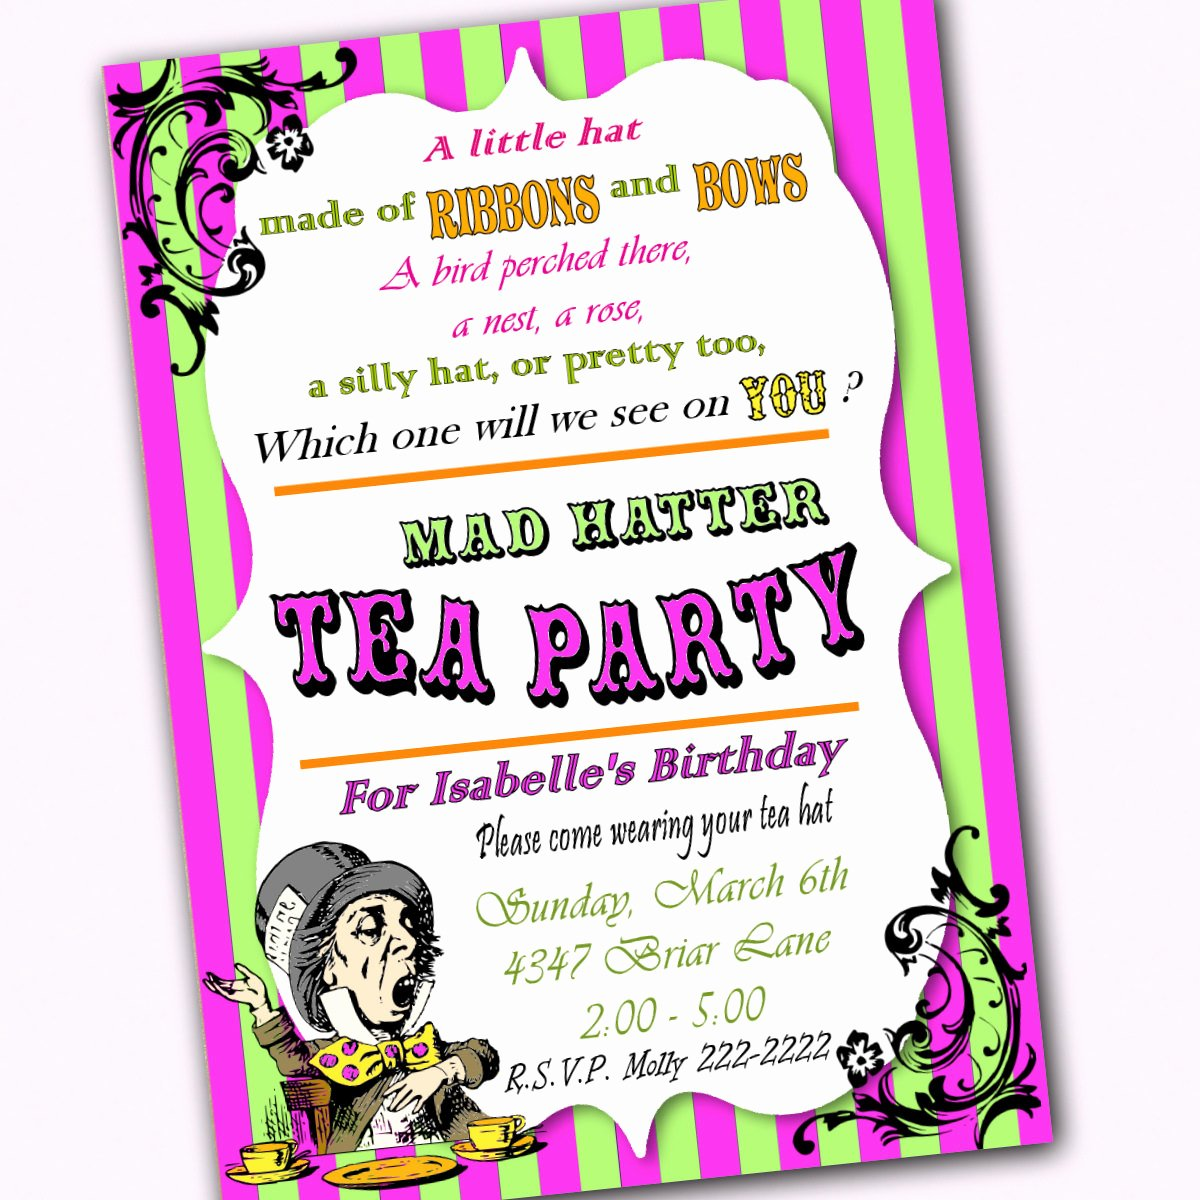 Mad Hatters Tea Party Invites Beautiful Mad Hatter Birthday Tea Party Bright Invitation by Partyeverafter